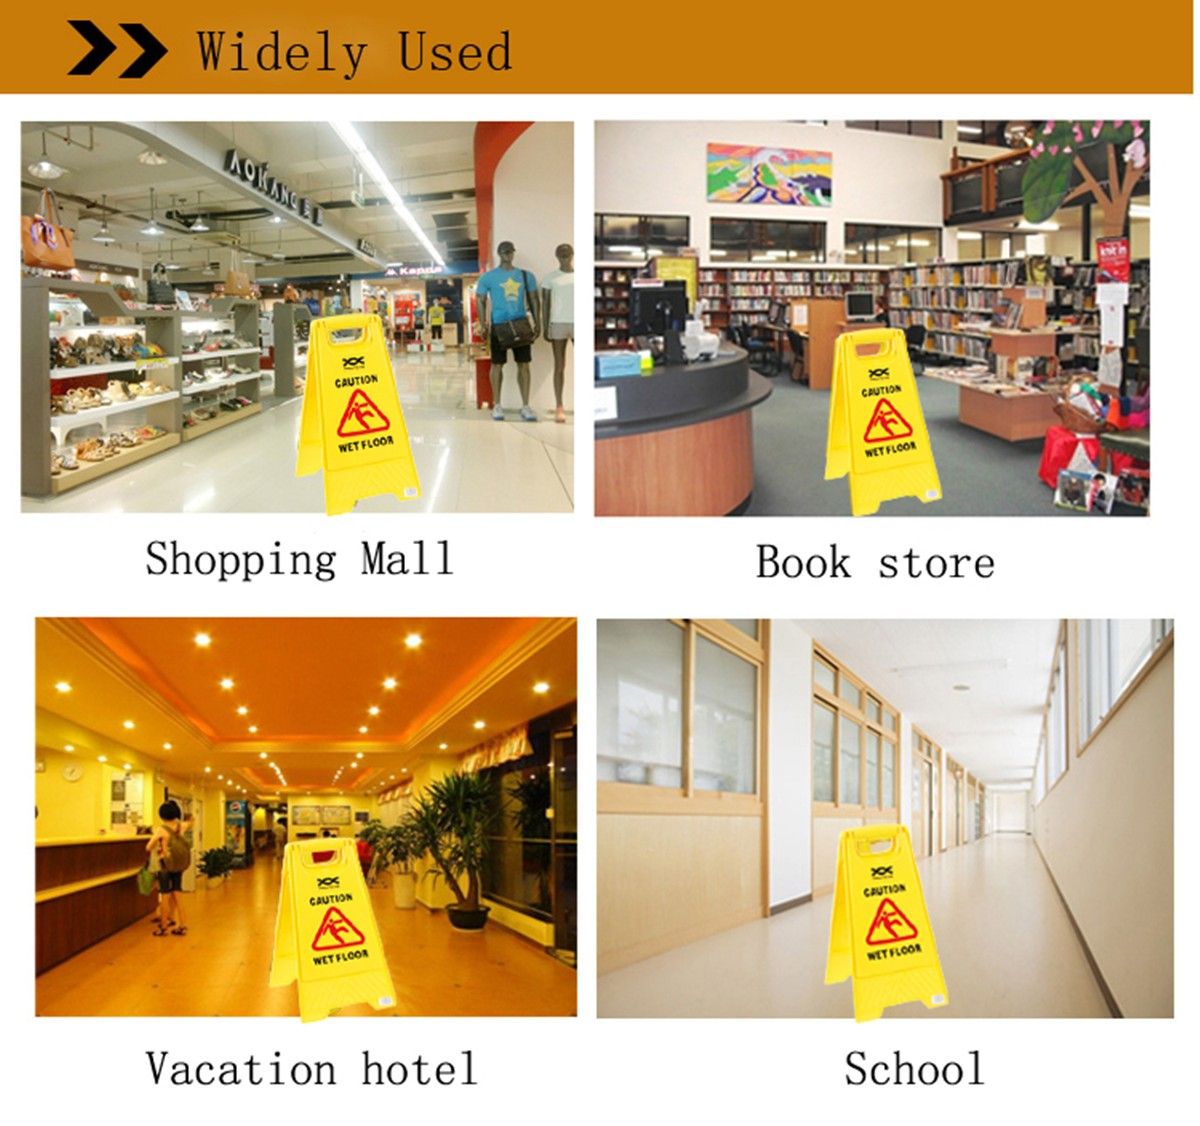 Professional Wet Floor Warning Caution Hazard Cleaning Slippery Safety Sign Tools